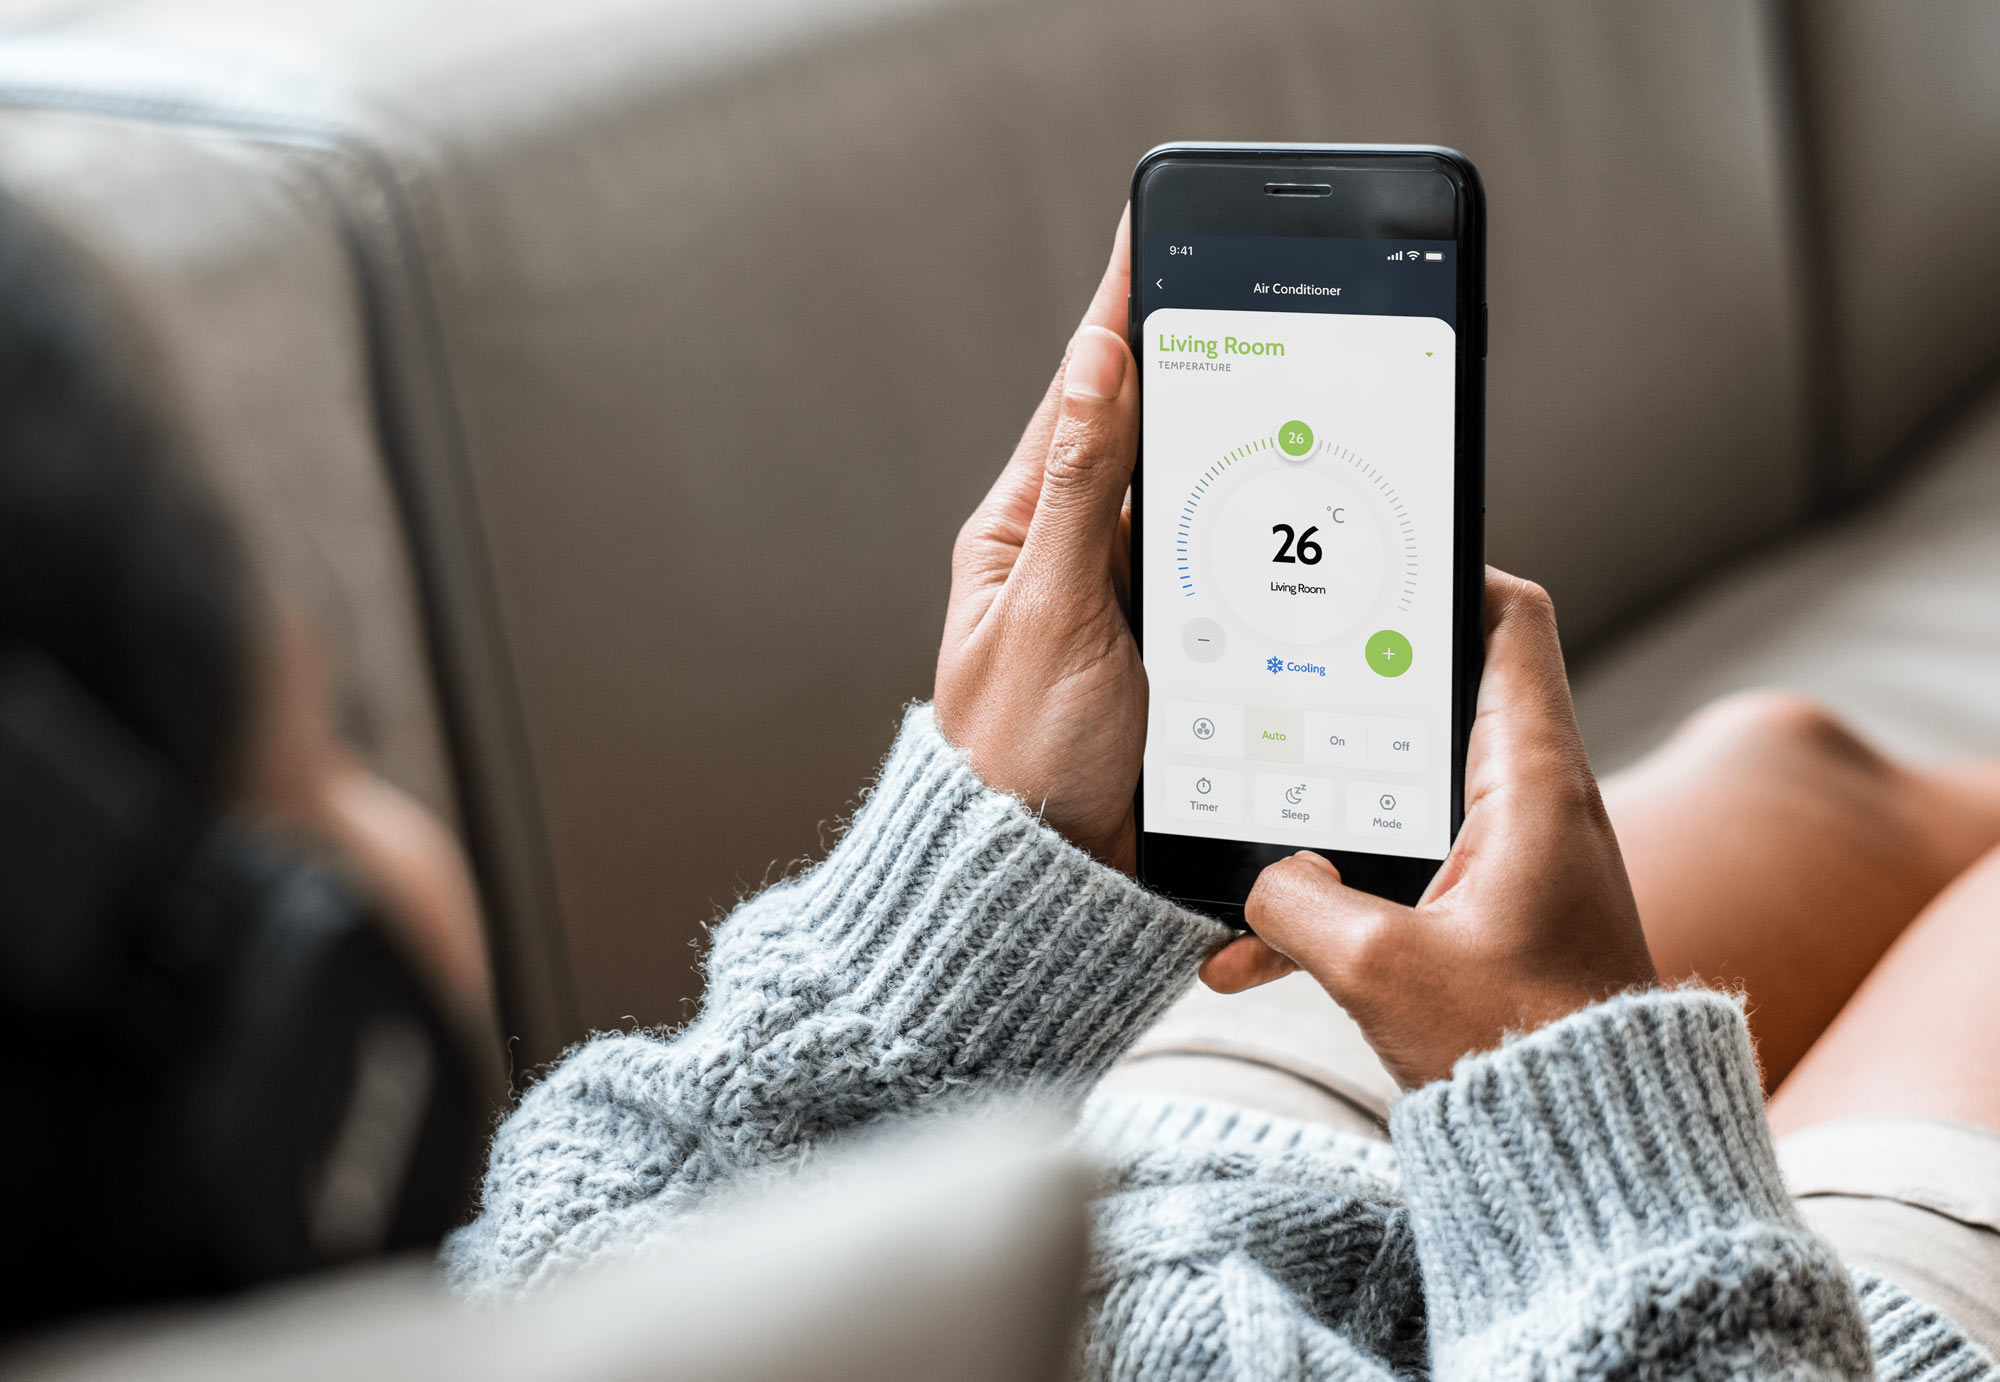 Smart Communities at the Level of Home Automation